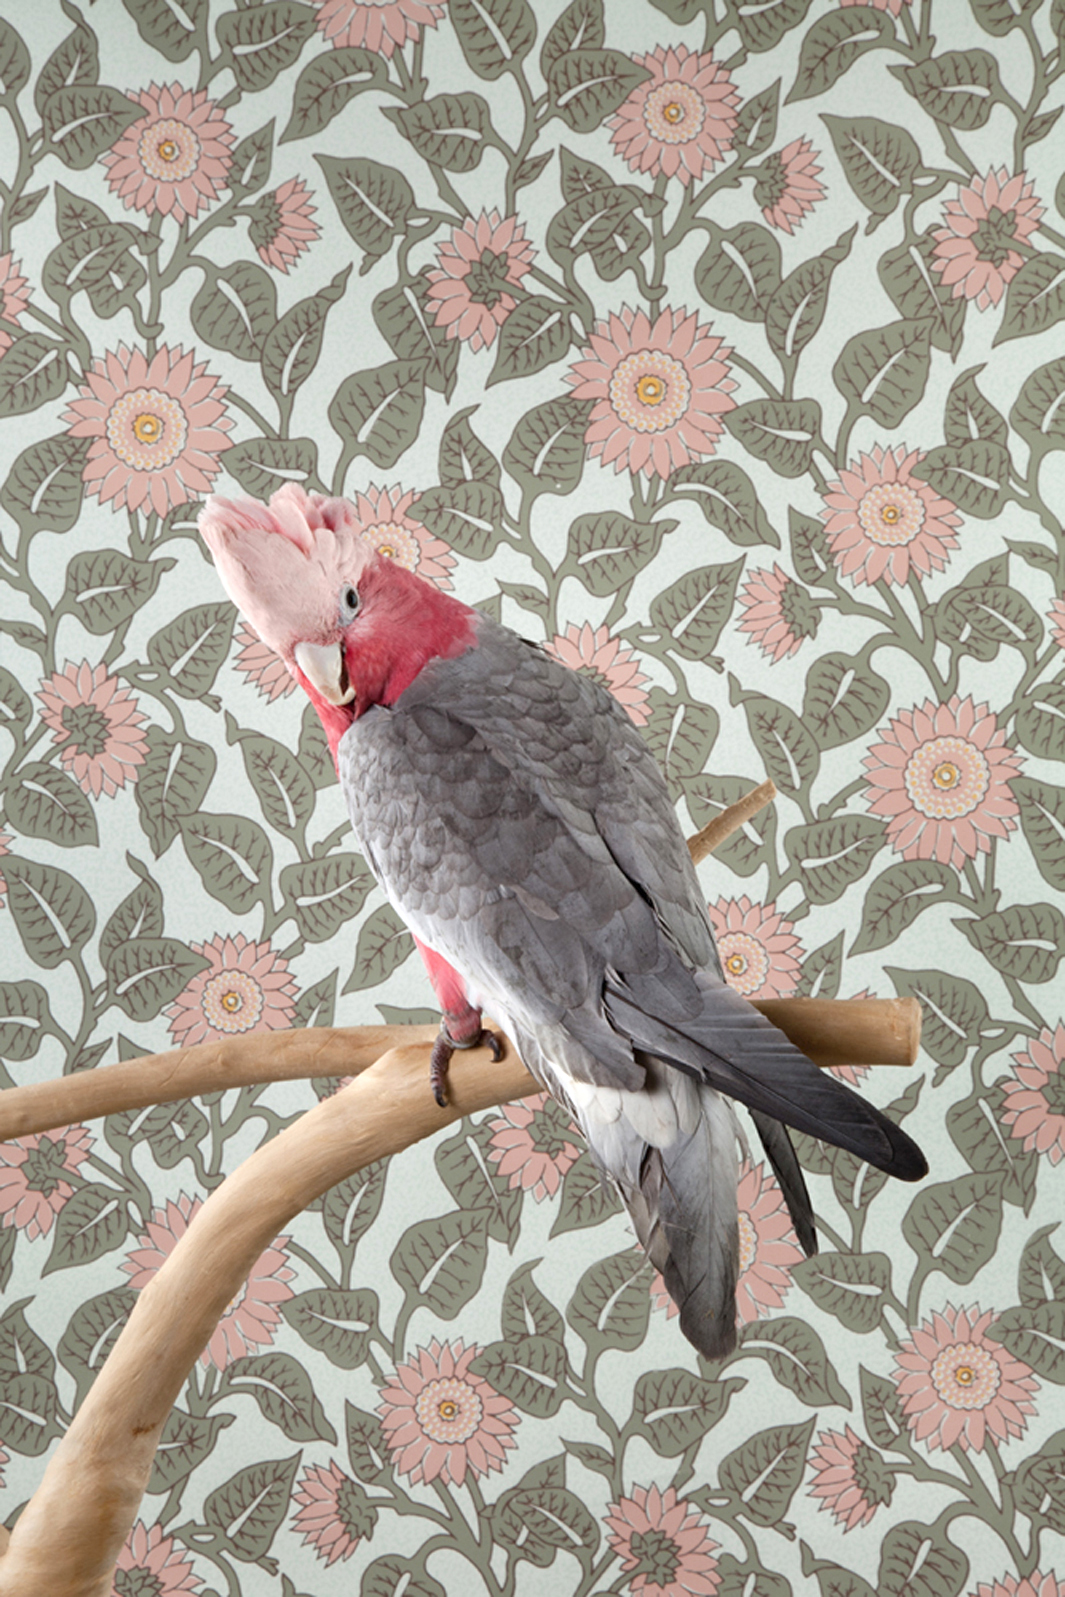 Claire Rosen | Rose Breasted Cockatoo in front of a Vintage Wallpaper